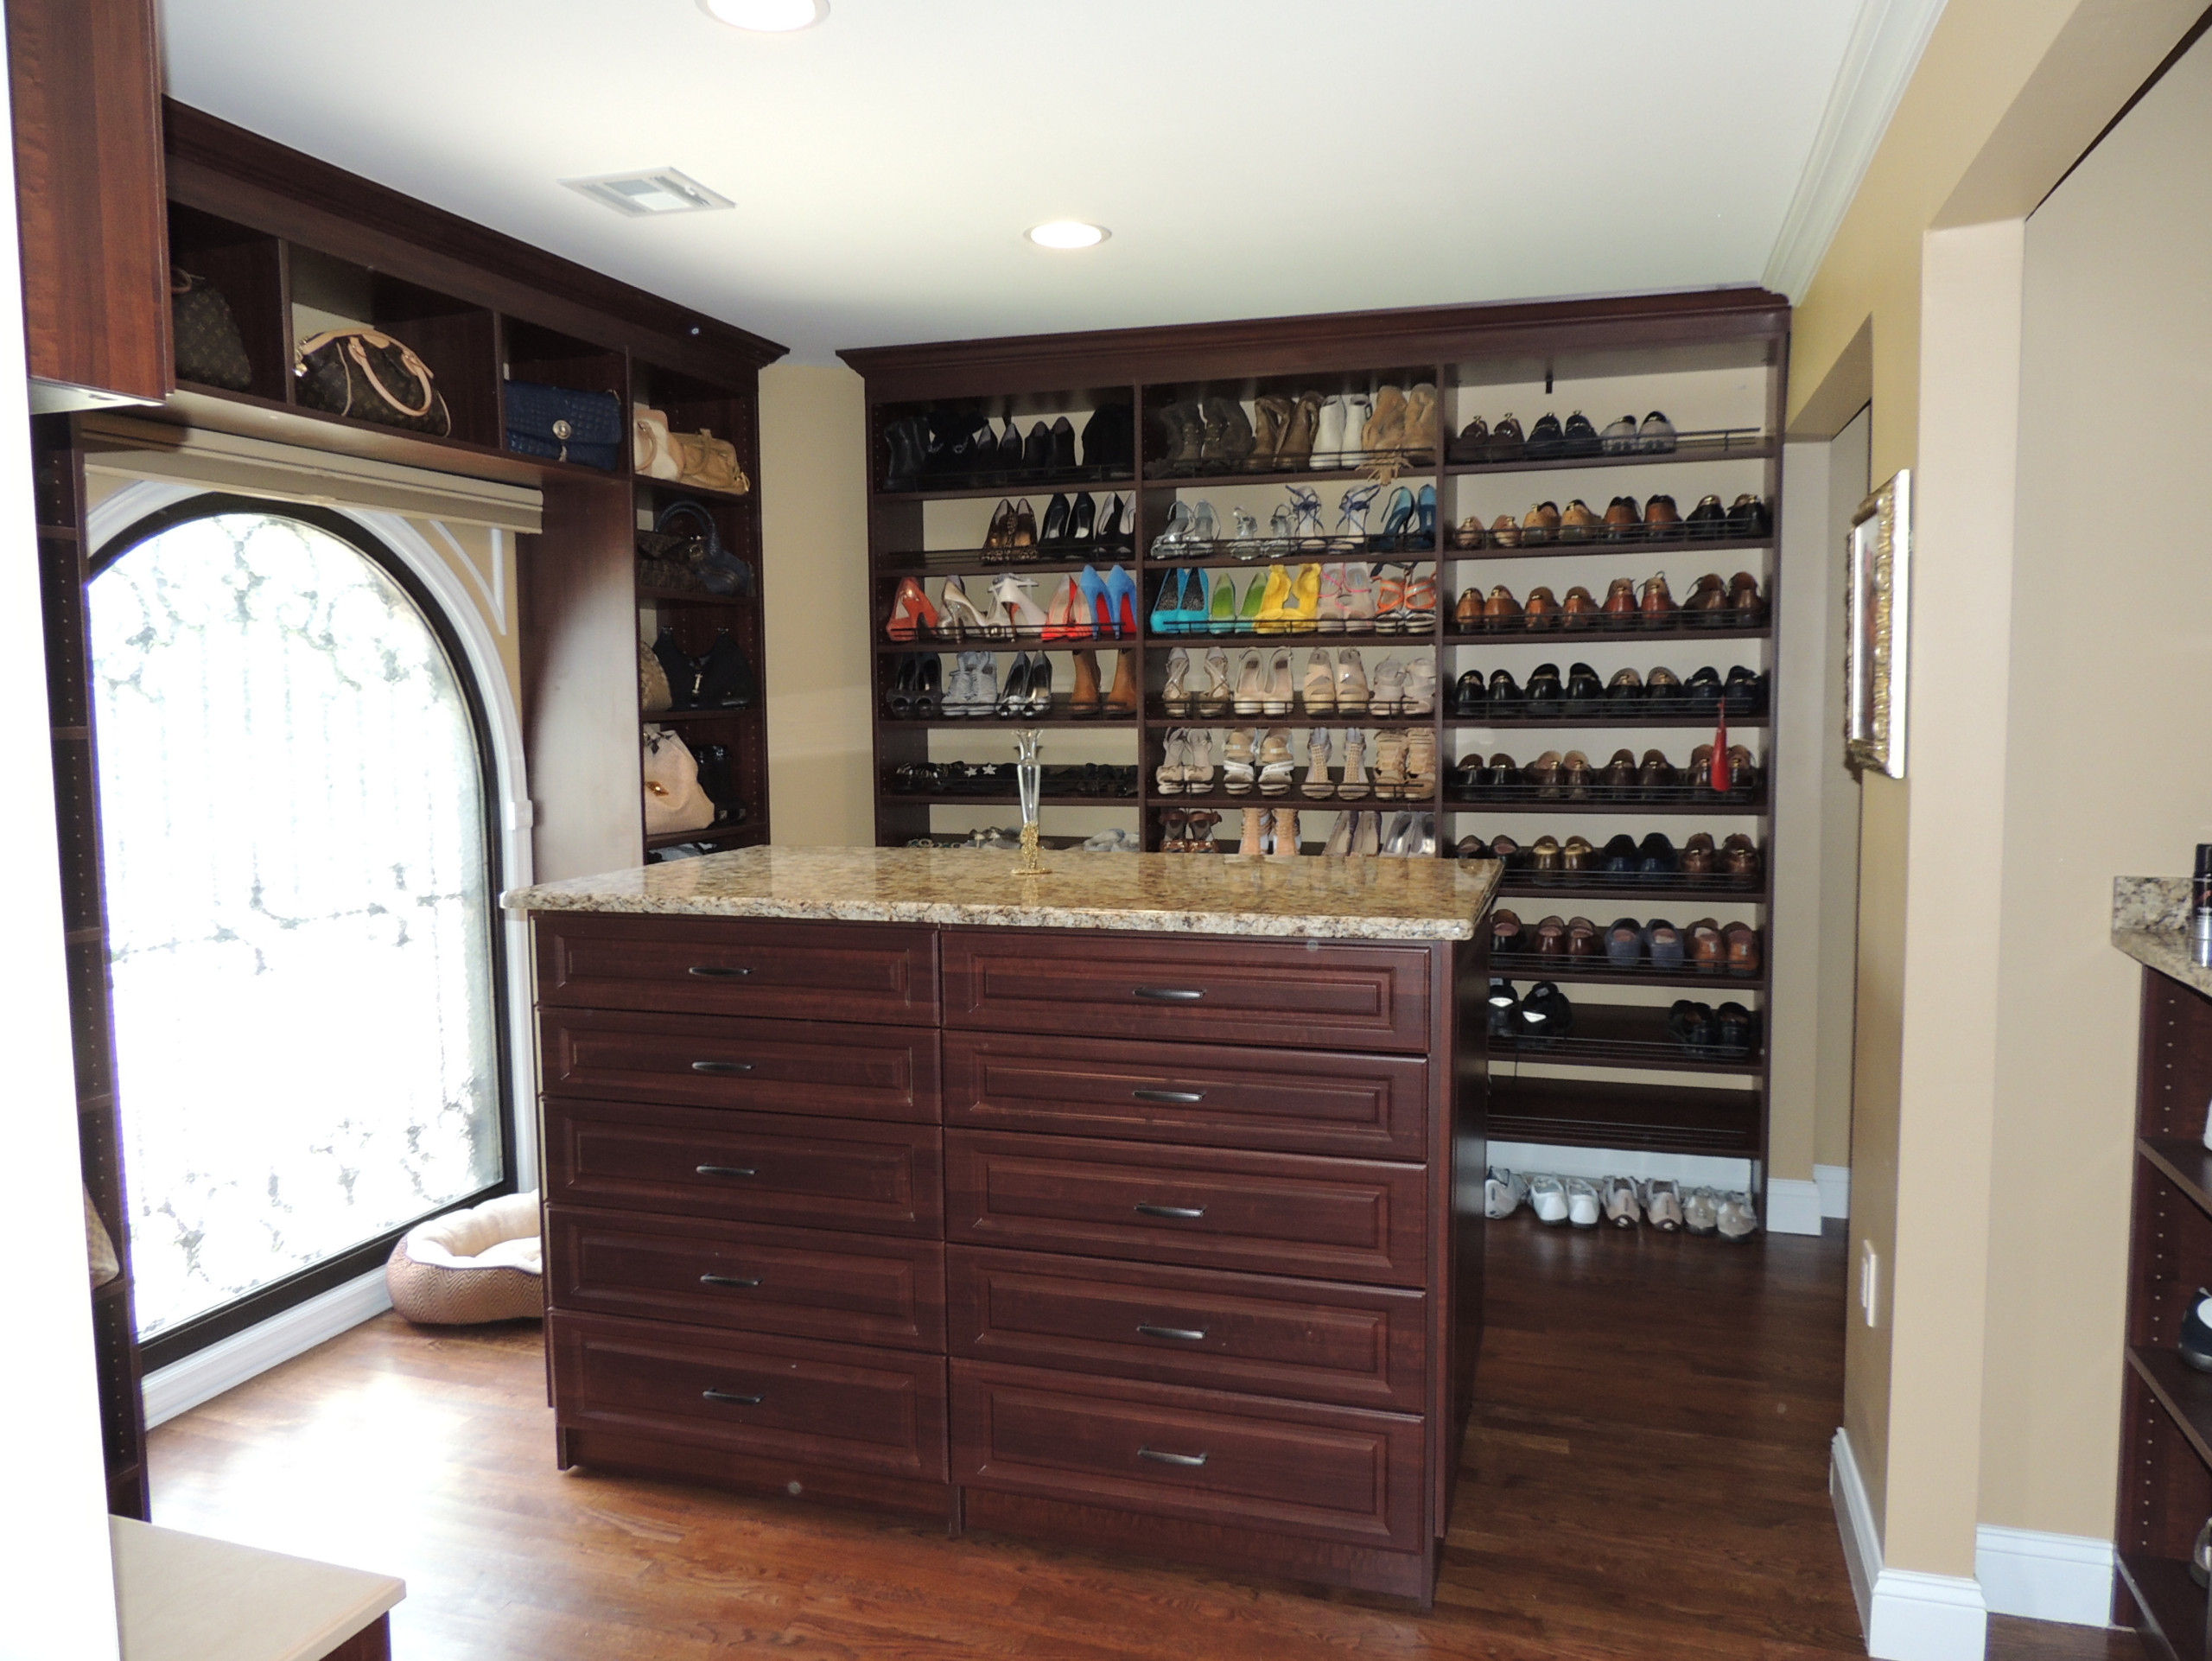 Closet has a large window and the clients wanted to have shelving to go around the window.  There is a large island with twenty drawers.  All the drawers have custom jewelry, tie and dividers.  There